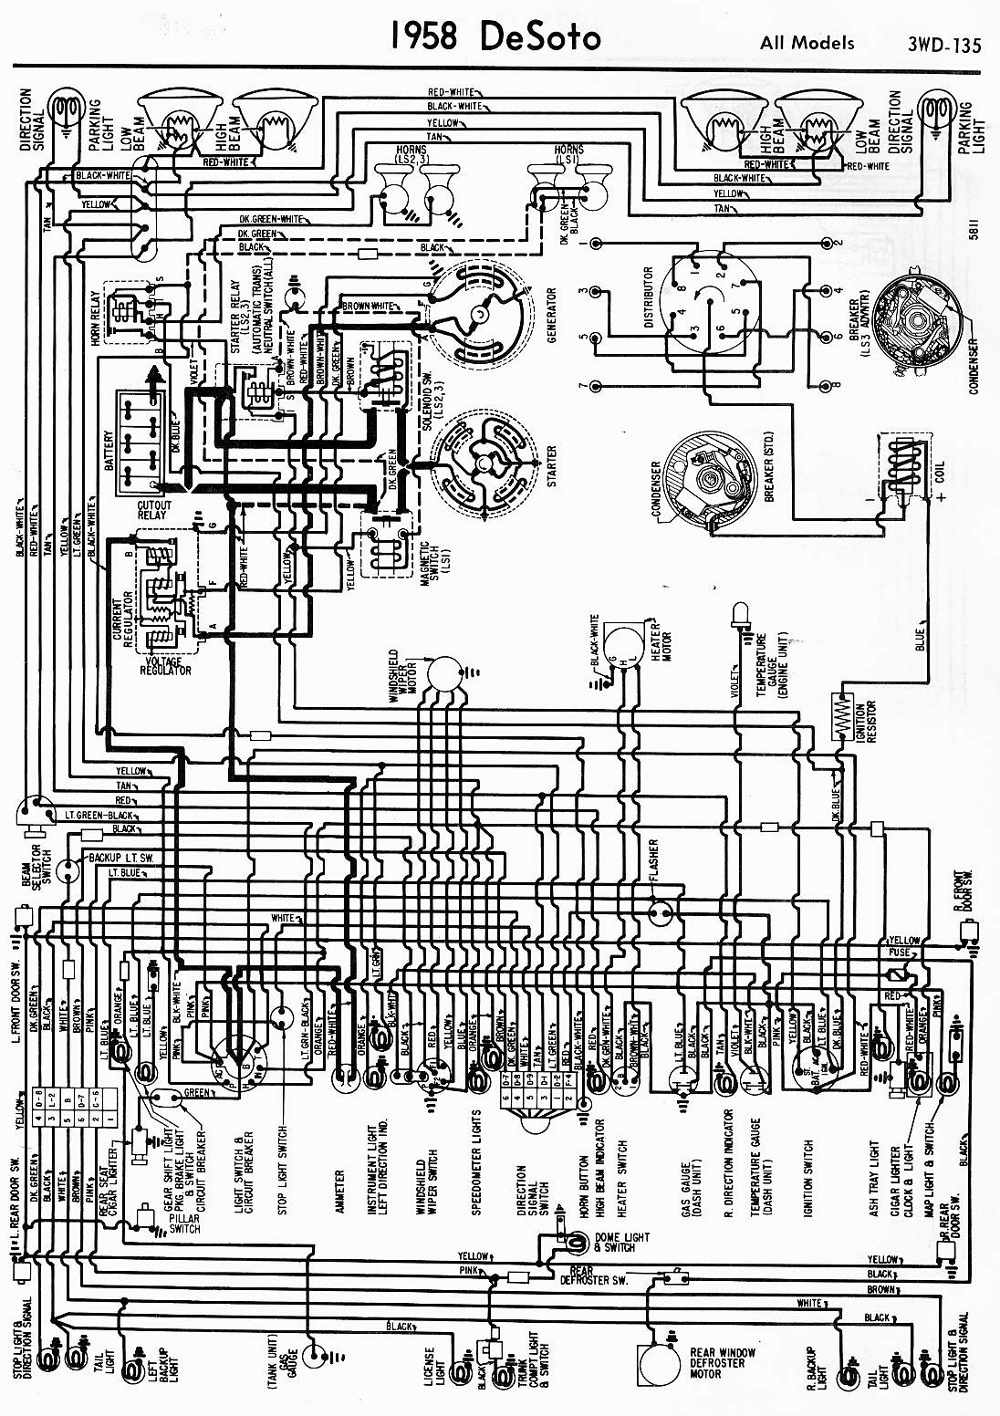 1955 Chrysler Wiring Auto Electrical Diagram Starting Circuit For The Mercury All Models Desoto 1959 Fireflite U2022 Mifinder Co